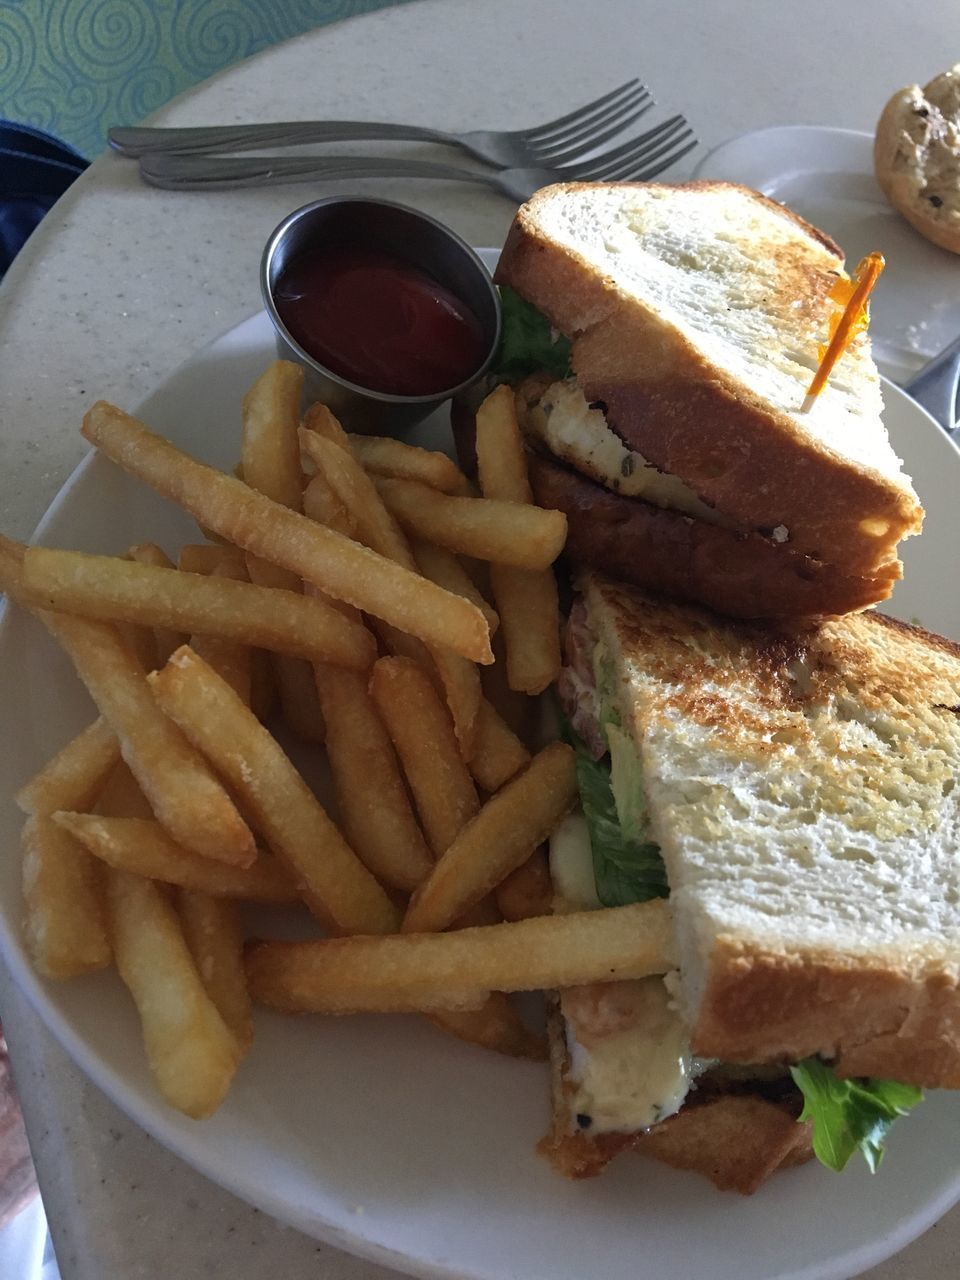 food and drink, french fries, food, ready-to-eat, prepared potato, freshness, plate, unhealthy eating, serving size, breakfast, deep fried, close-up, indoors, no people, fast food, dip, sandwich, day